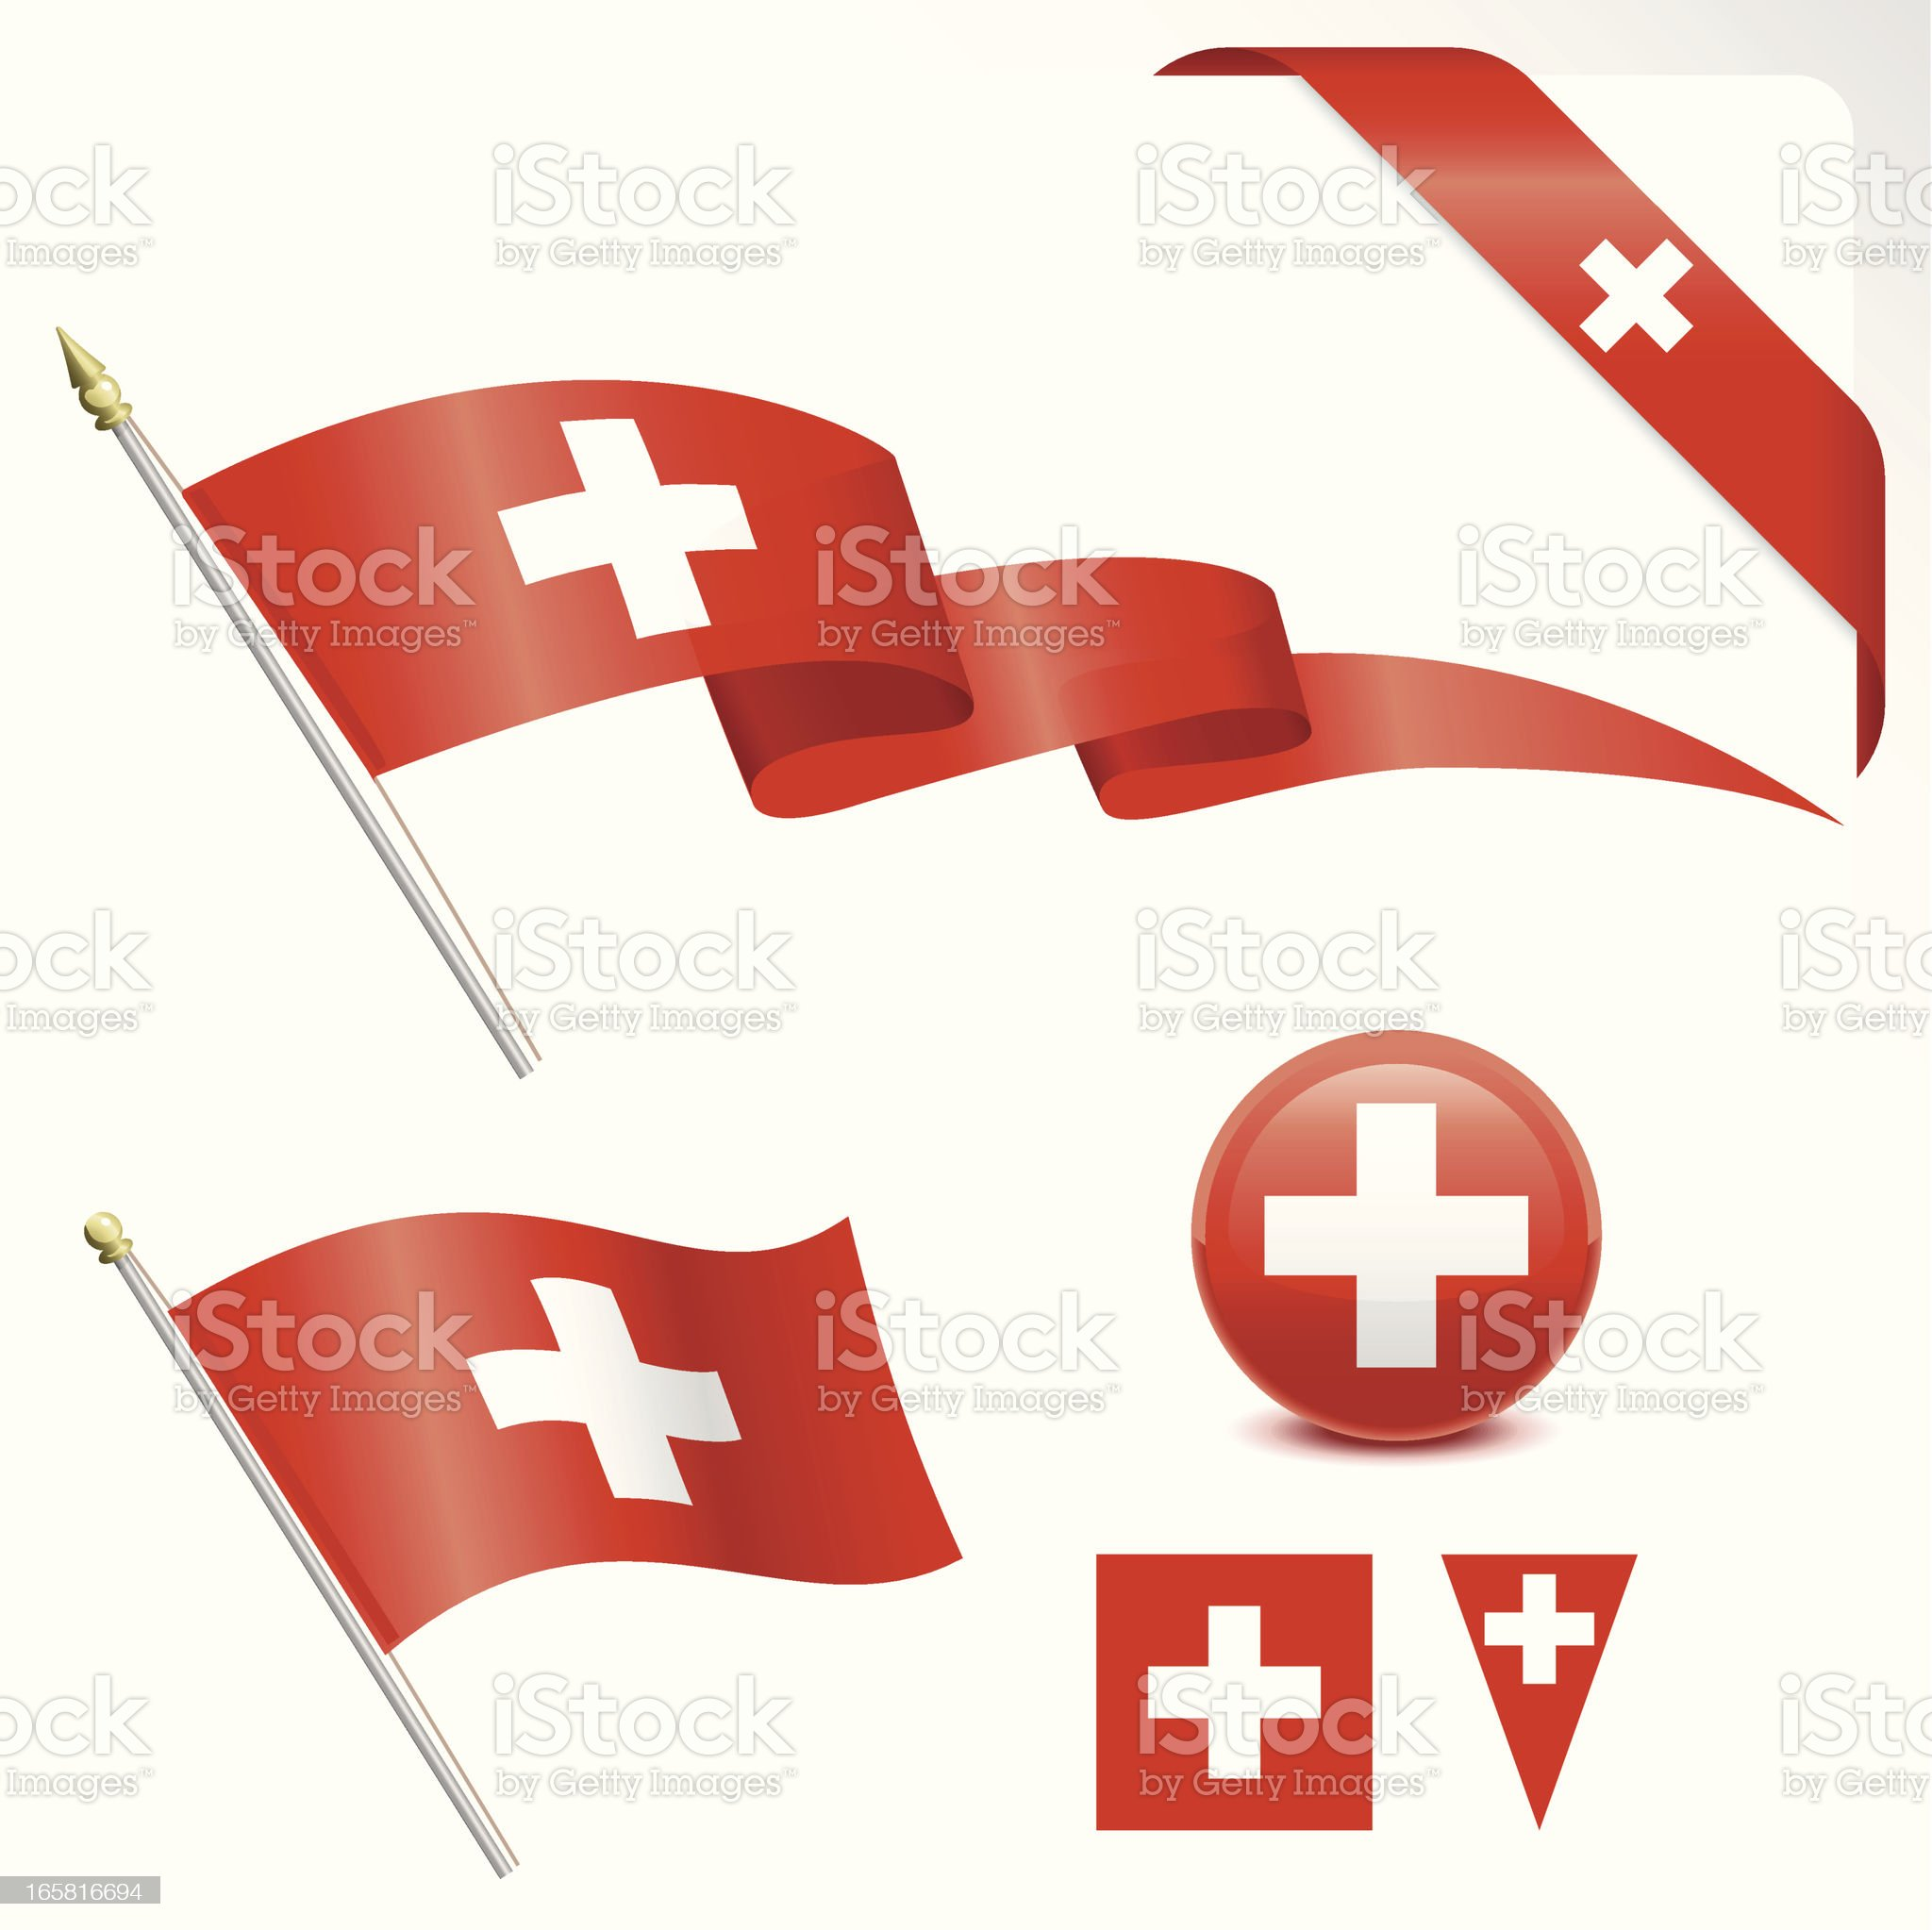 Vector images of various Swiss flag designs royalty-free stock vector art